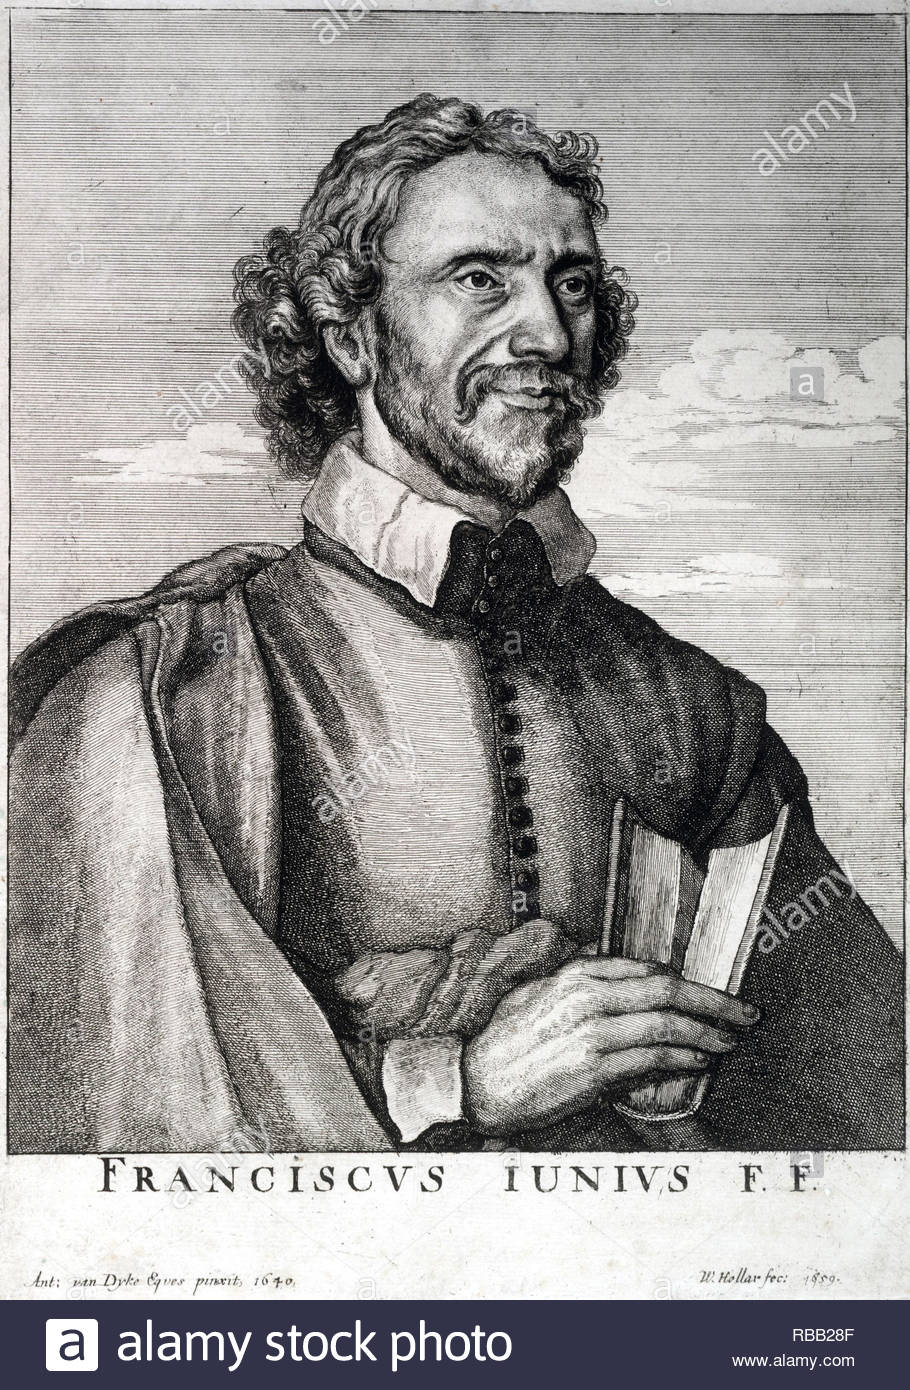 Franciscus Junius the Elder (born François du Jon, 1 May 1545 – 13 October 1602) was a Reformed scholar, Protestant reformer and theologian, etching by Bohemian etcher Wenceslaus Hollar from 1659 - Stock Image